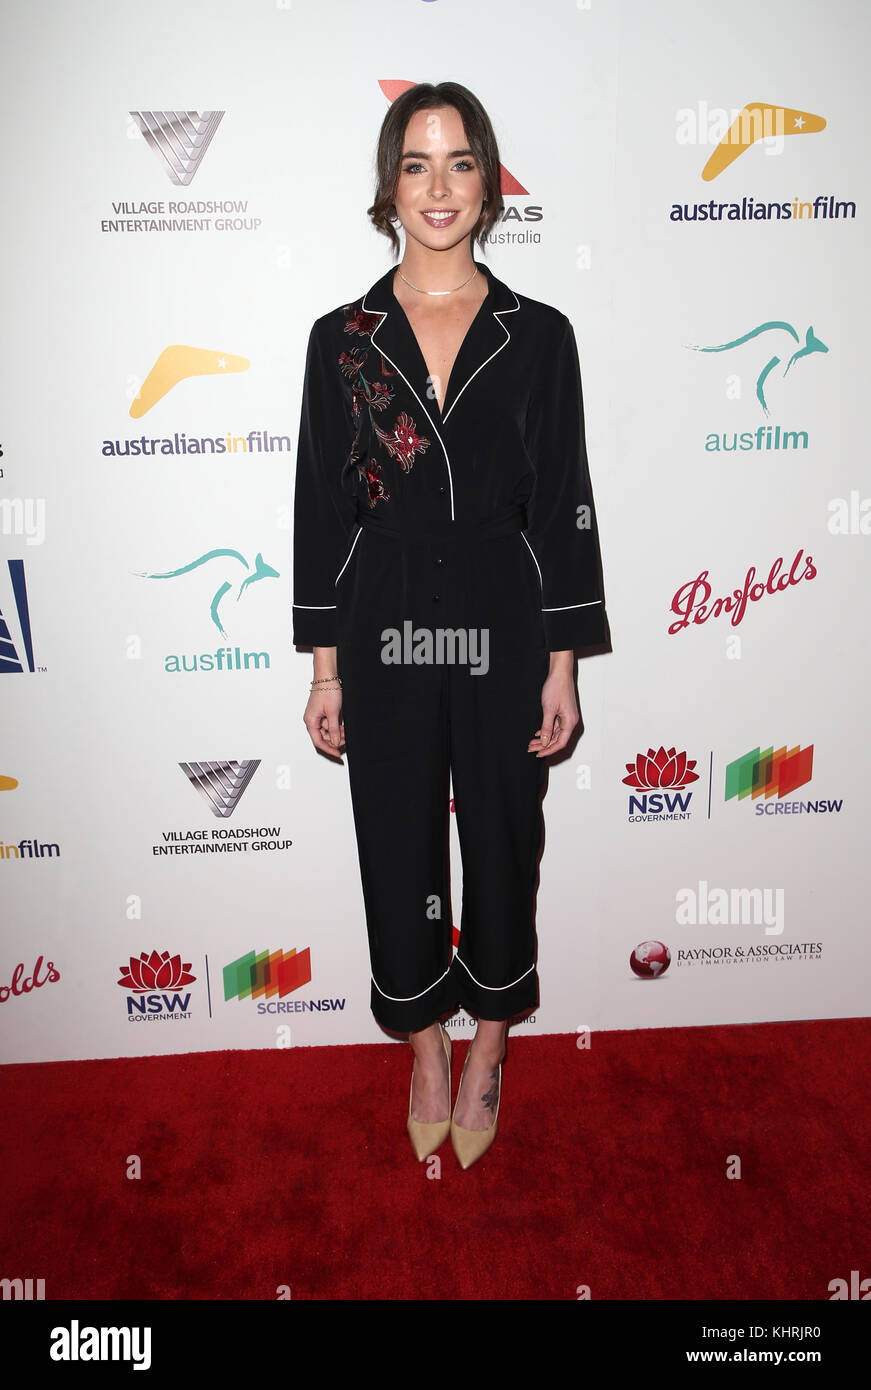 Ashleigh brewer australians in film awards benefit dinner in los angeles